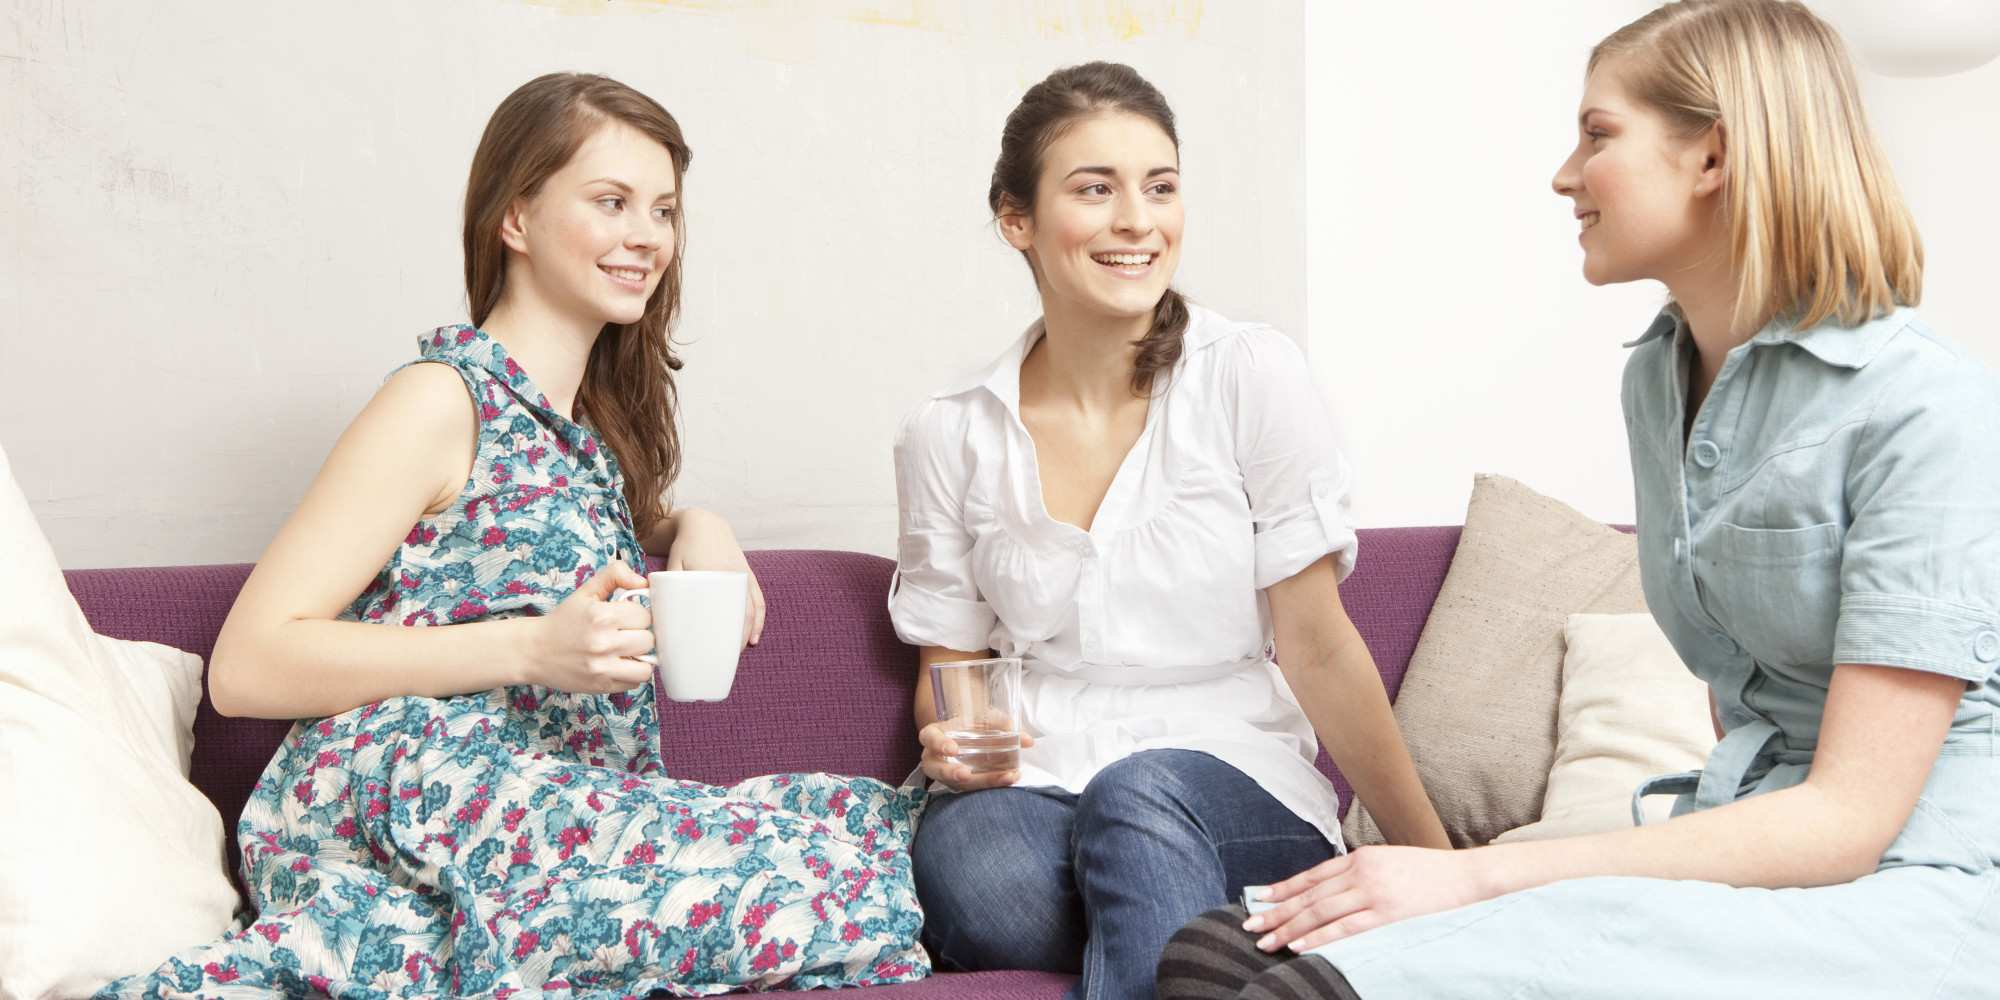 o-WOMEN-TALKING-ON-COUCH-facebook